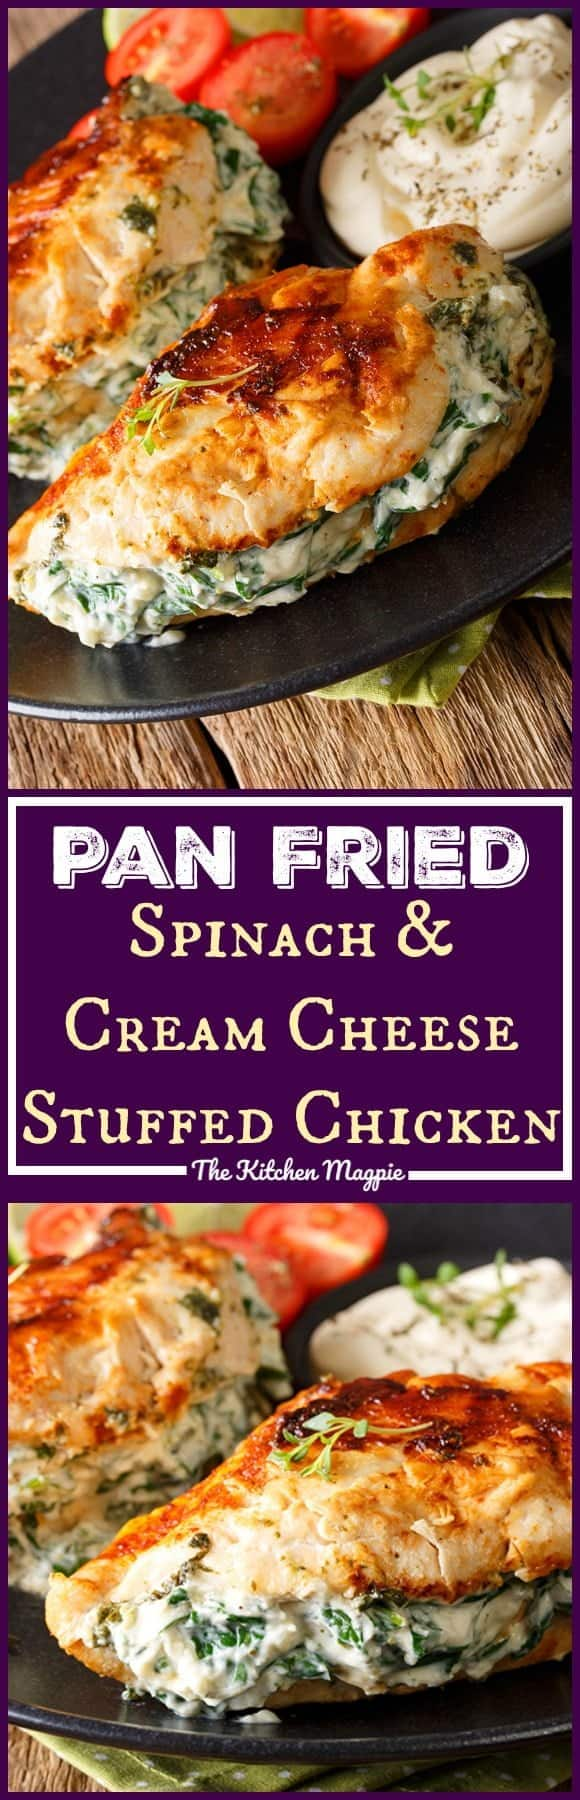 Pan Fried Spinach & Cream Cheese Stuffed Chicken Breasts. This healthy chicken dish is fast and simple to prepare! Use low-fat cream cheese and Parmesan and you have a healthy dinner full of protein and veggies! Recipe from @kitchenmagpie #recipe #chicken #creamcheese #dinner #supper